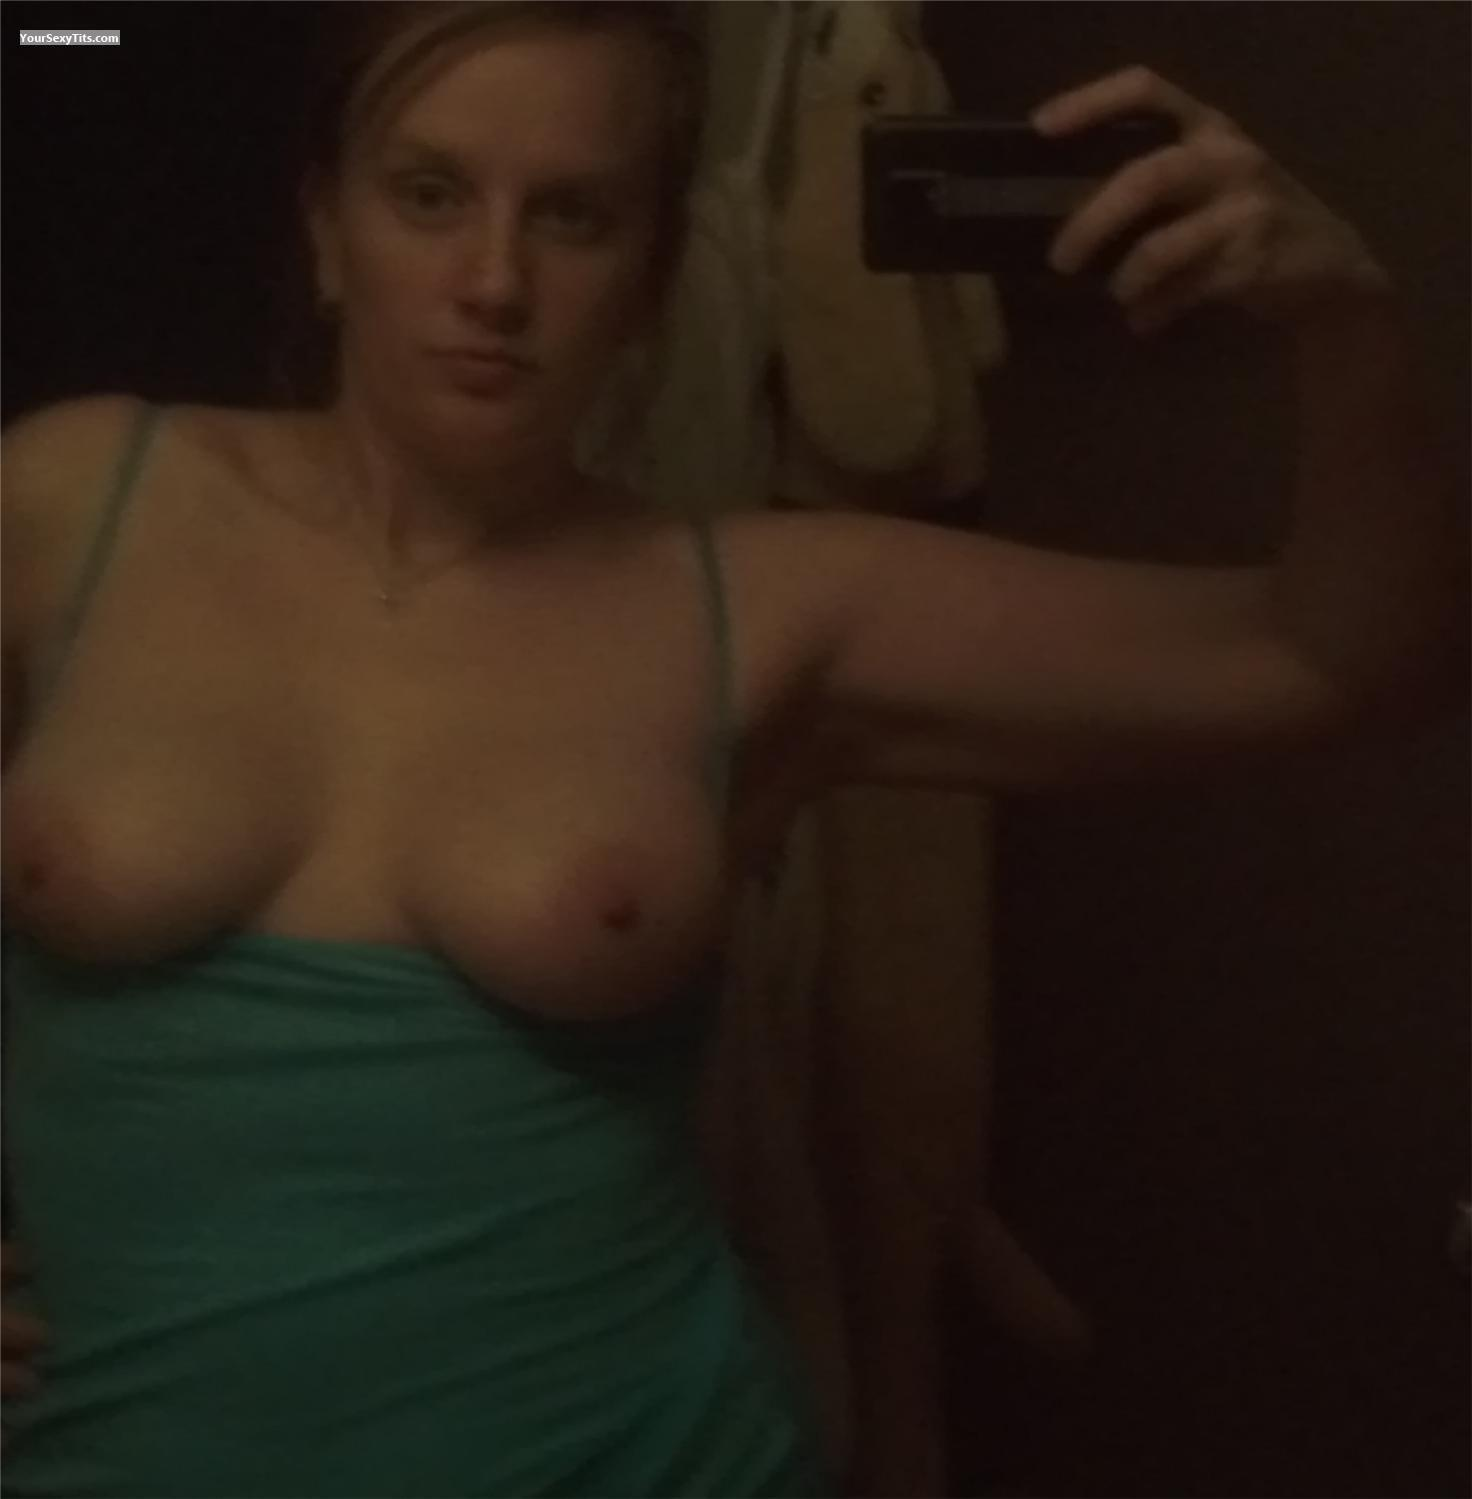 Big Tits Of A Friend Topless Selfie by Stehpany